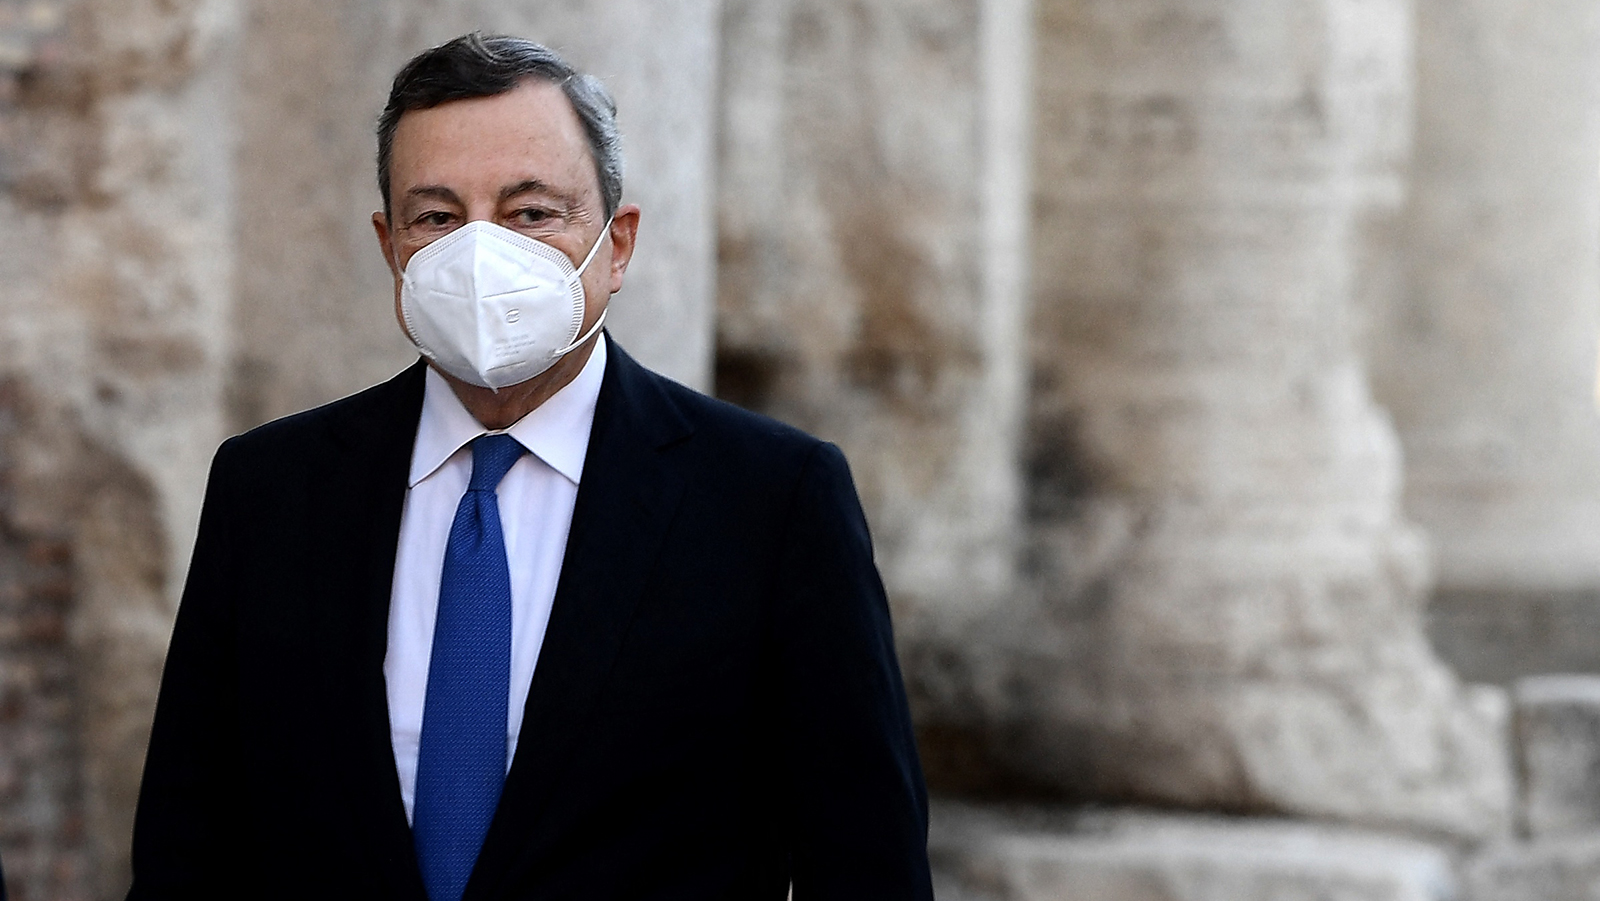 Italy Prime Minister Mario Draghi arrives to the Colosseum on the first day of the G20 Culture Ministers meeting on July 29, in Rome.